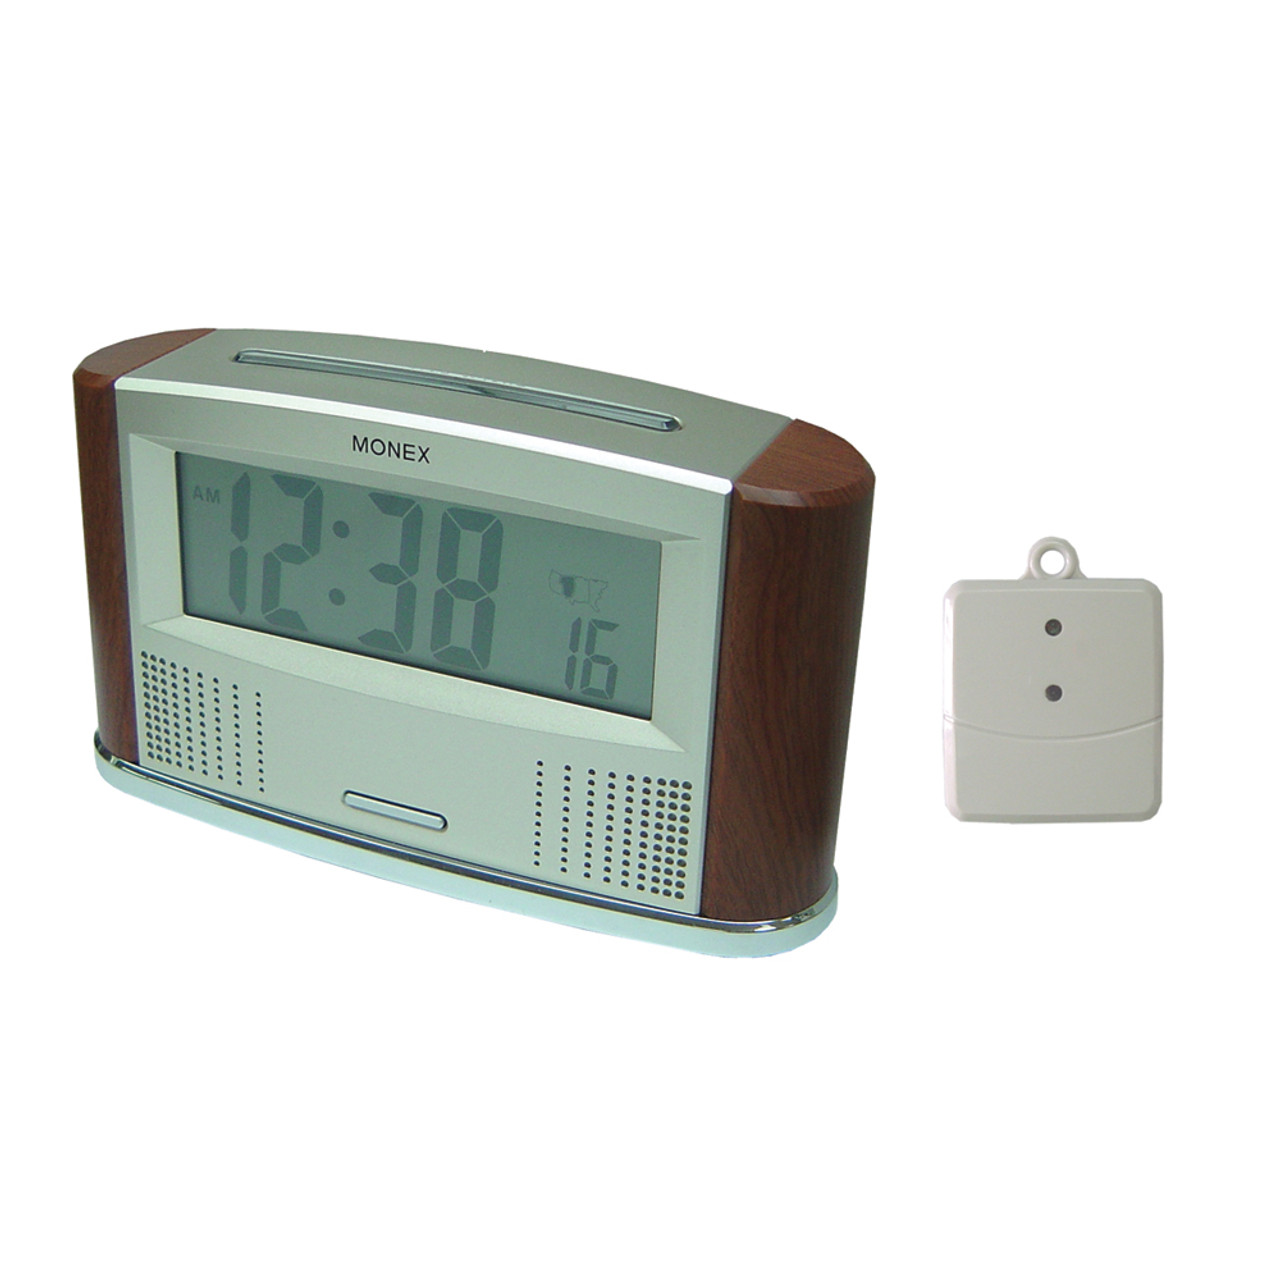 Talking Atomic Clock with Outdoor Temperature